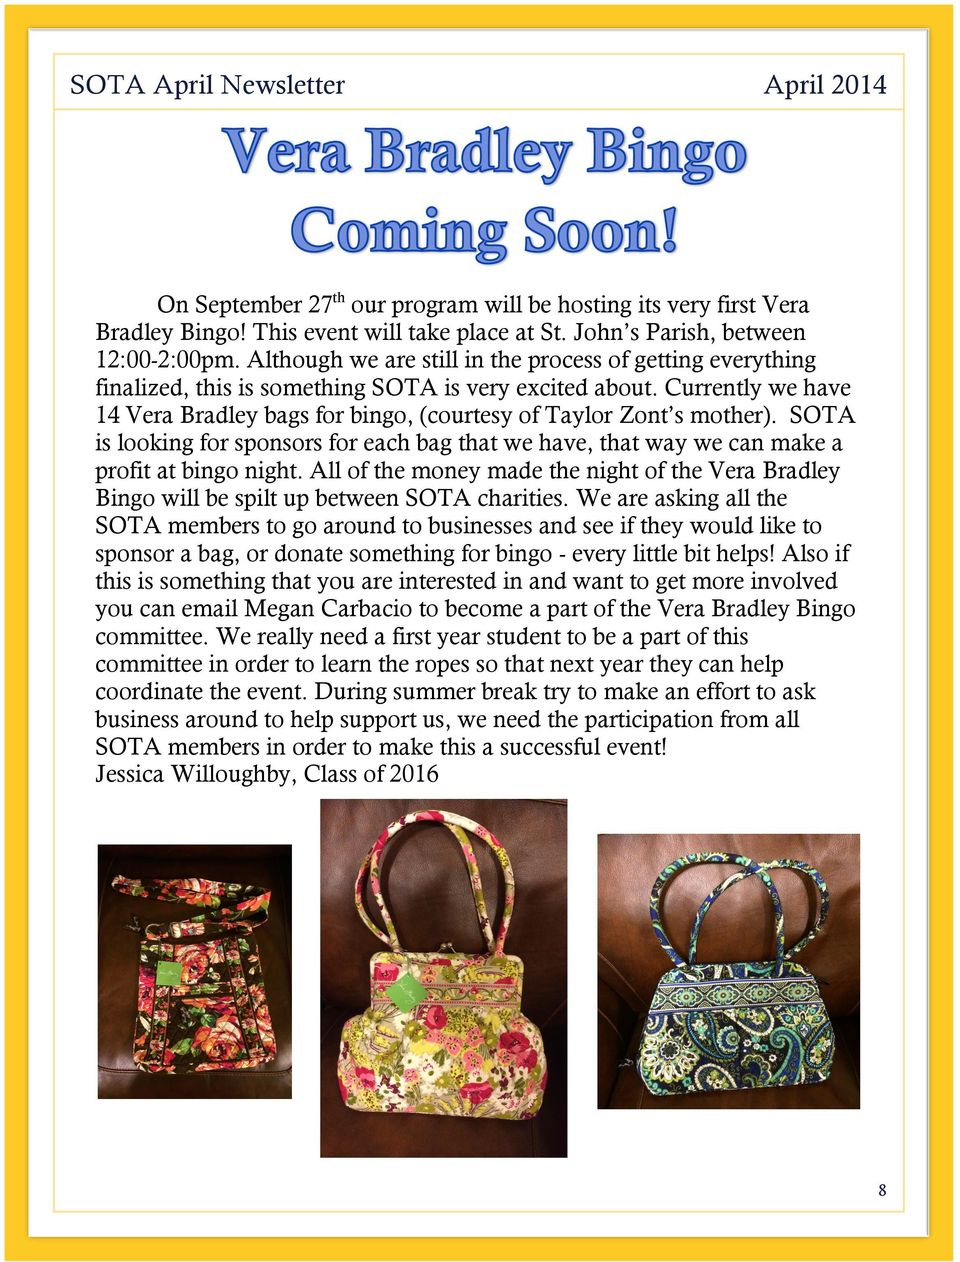 Currently we have 14 Vera Bradley bags for bingo, (courtesy of Taylor Zont s mother). SOTA is looking for sponsors for each bag that we have, that way we can make a profit at bingo night.